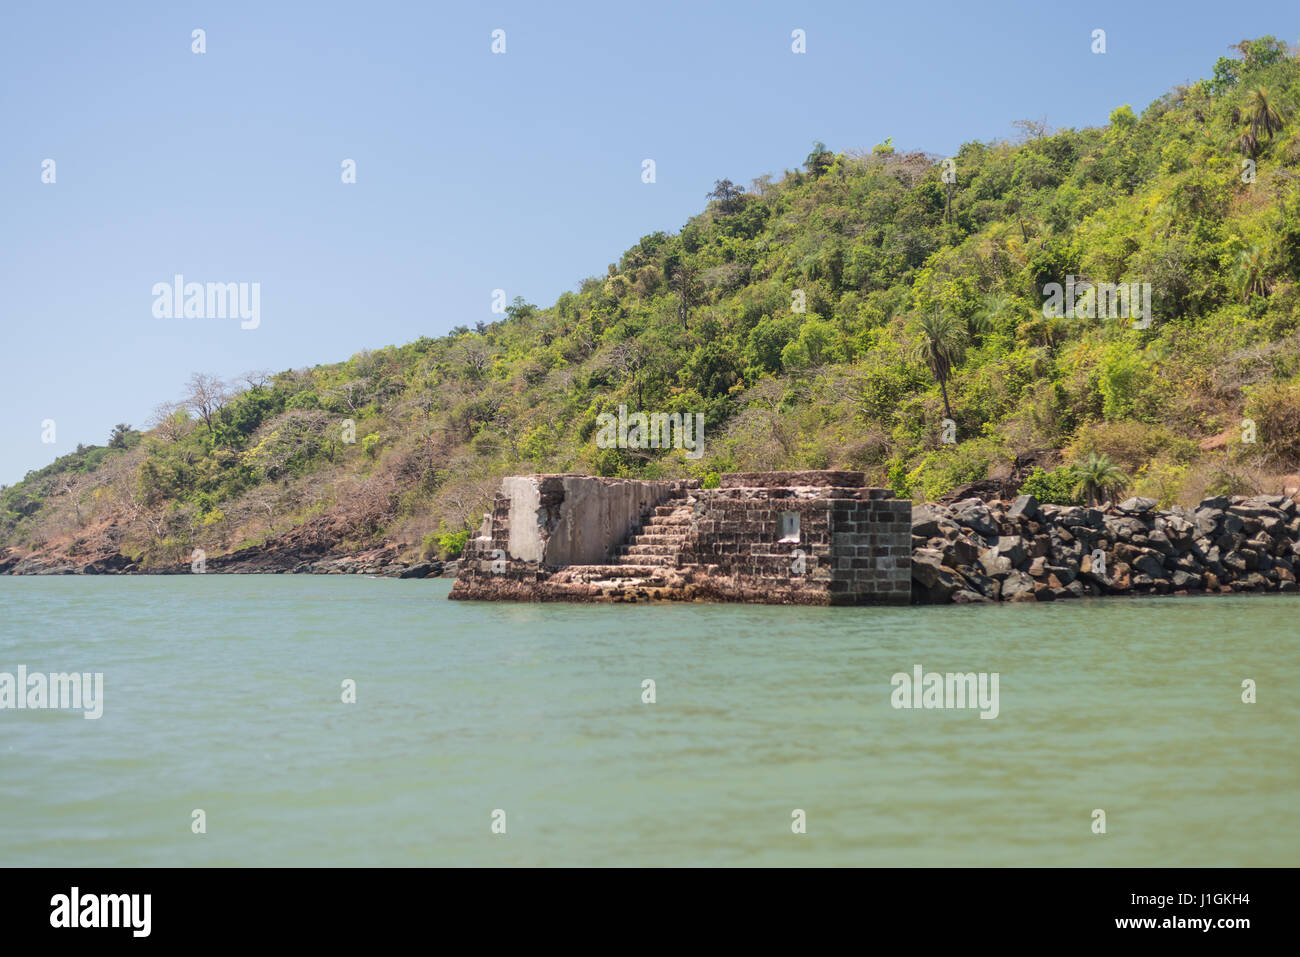 pier made of rocks and stones - Stock Image